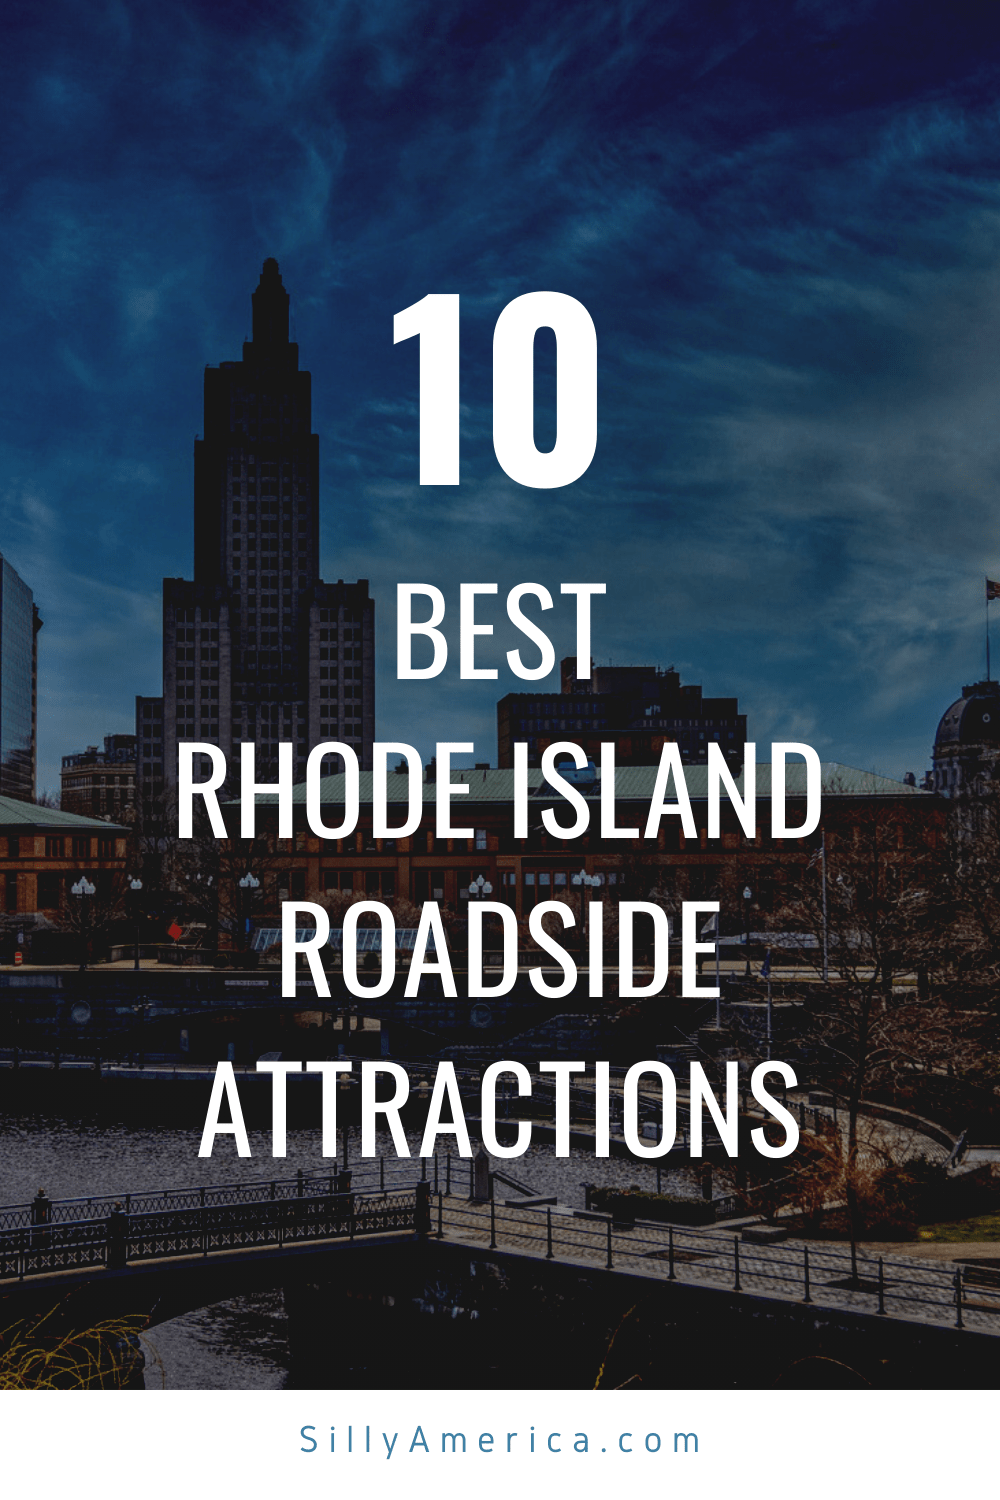 The best Rhode Island roadside attractions to visit on a Rhode Island road trip. Add these weird roadside oddities to your travel bucket list or itinerary and visit them when vacationing in Providence or Newport! #RhodeIslandRoadsideAttractions #RhodeIslandRoadsideAttraction #RoadsideAttractions #RoadsideAttraction #RoadTrip #RhodeIslandRoadTrip #WeirdRoadsideAttractions